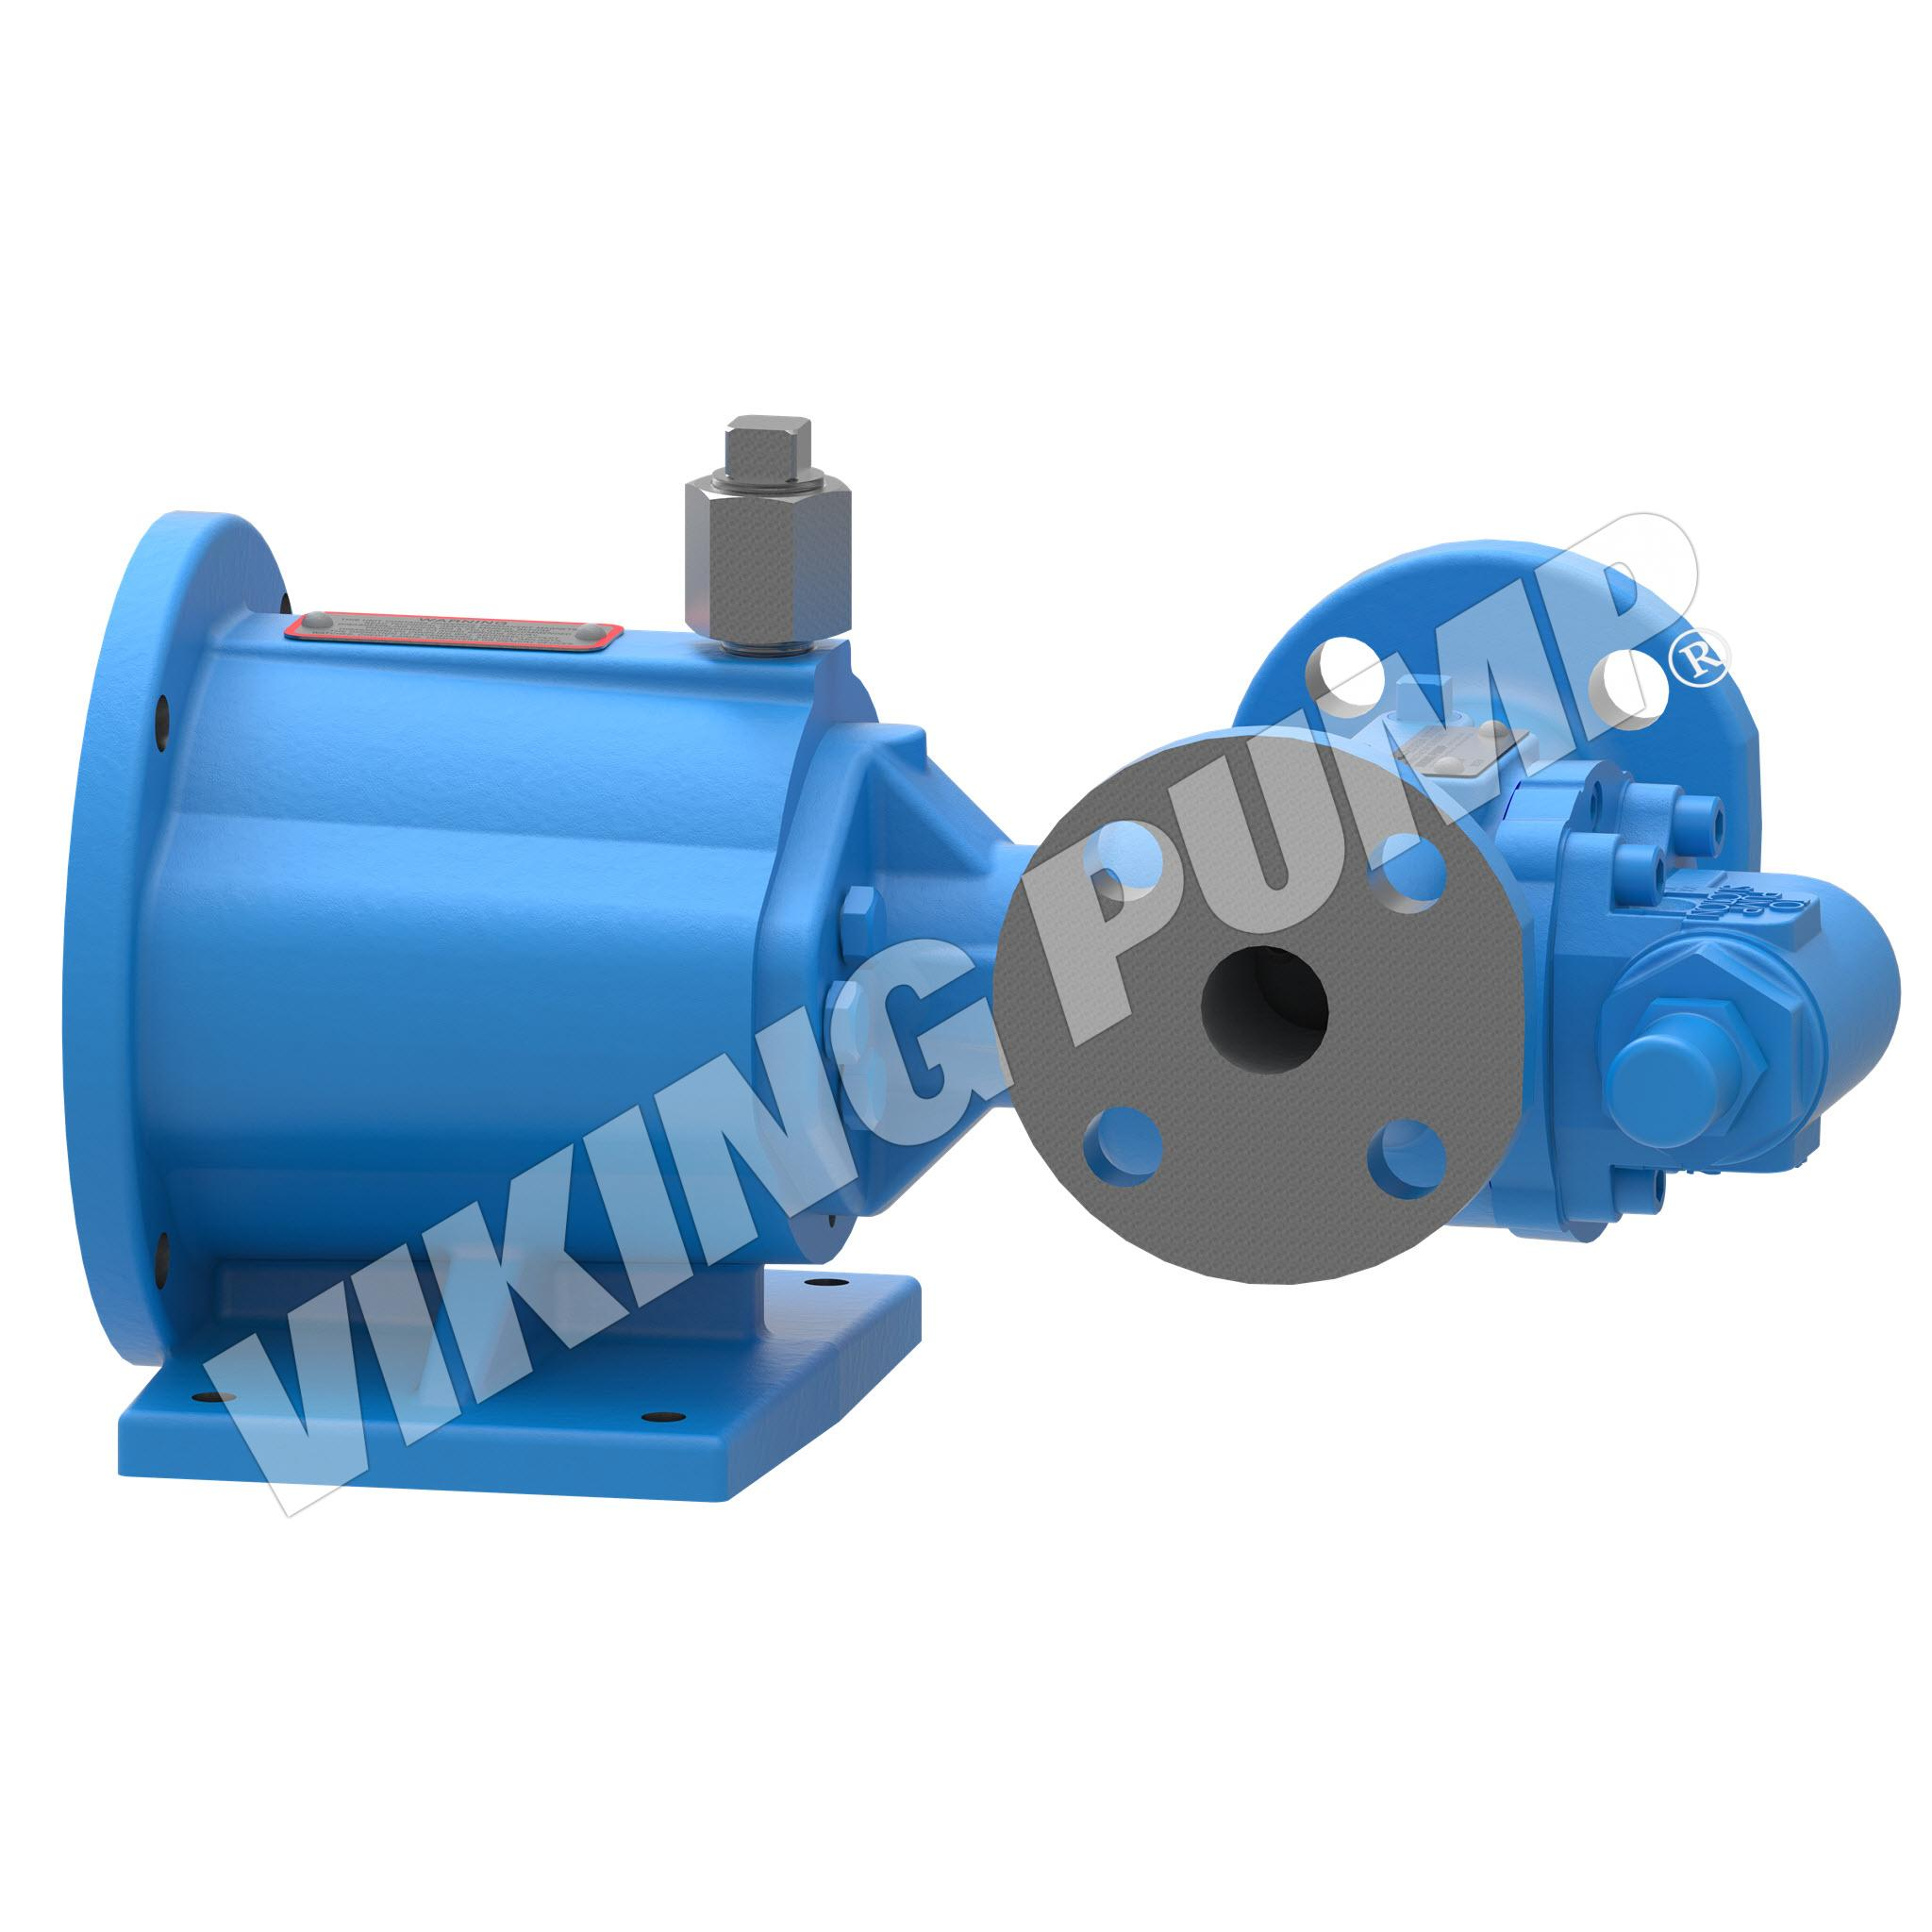 Model GG897, Footed Coupling, Motor Mount, Mag Drive, Relief Valve Pump